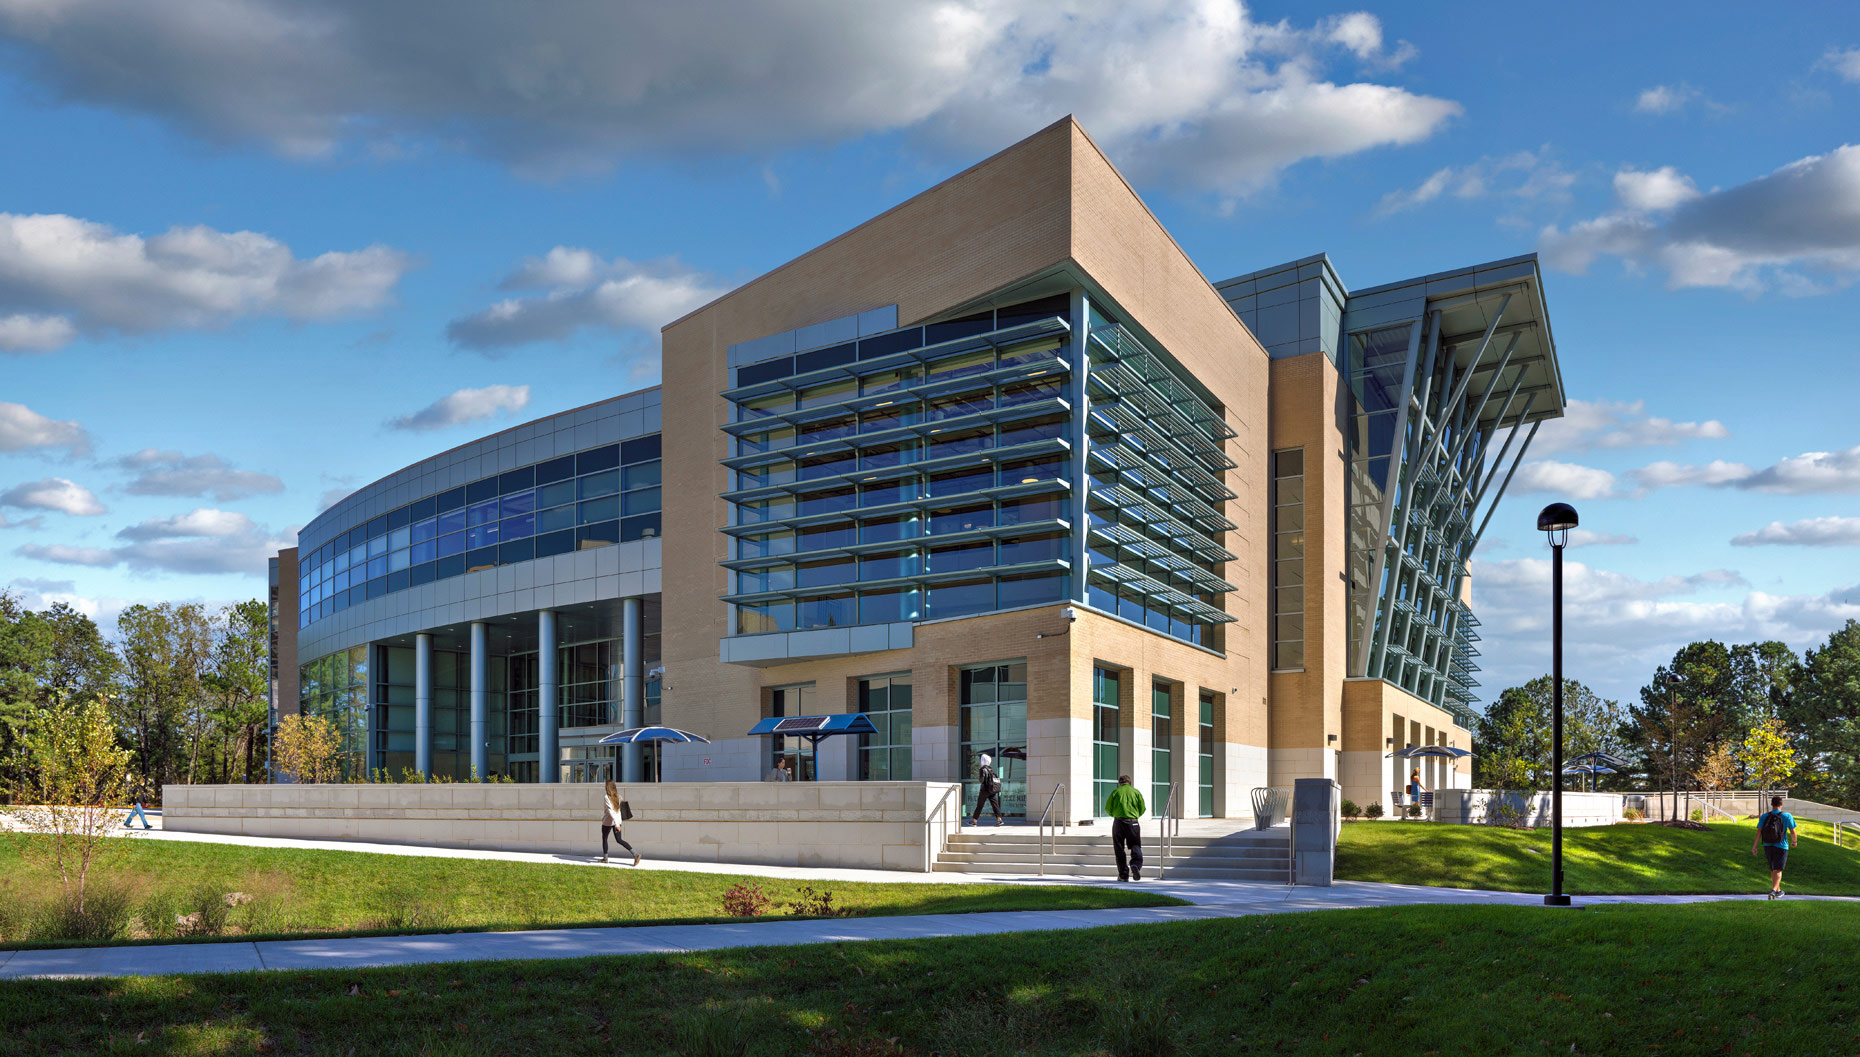 Northern Virginia Community College | Maylone Architectural Photo